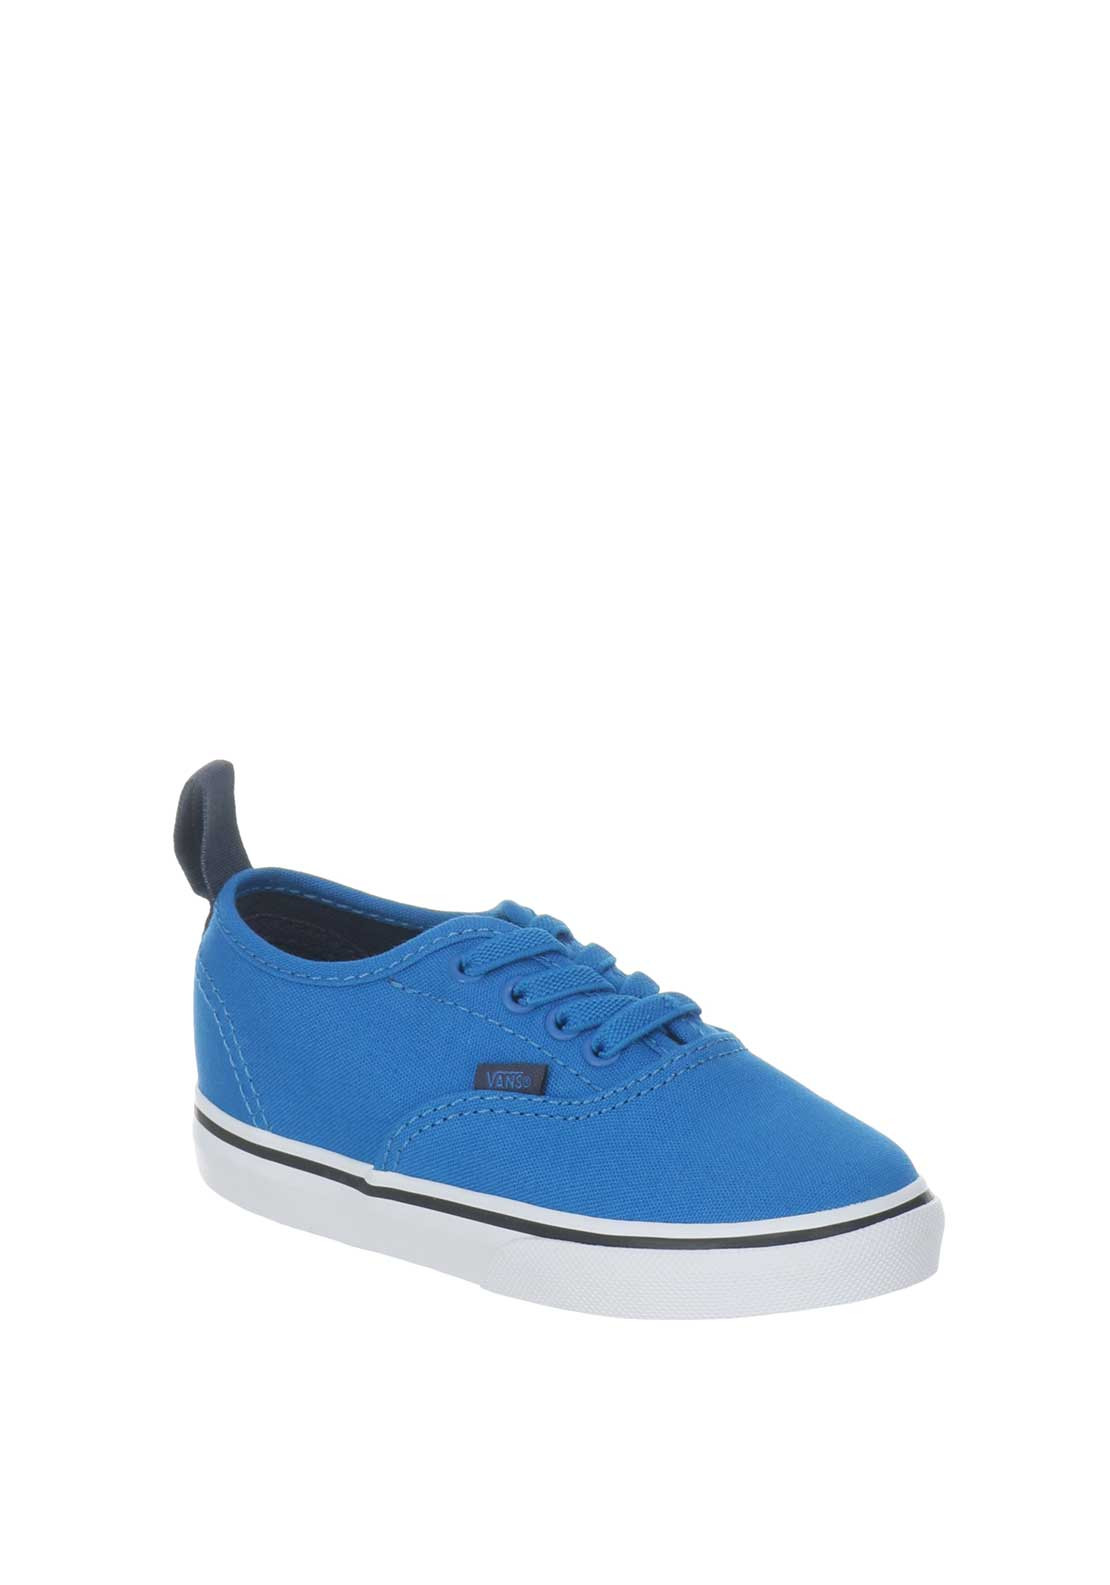 aed27787ce9e65 Vans Authentic Baby Boys Canvas Trainers